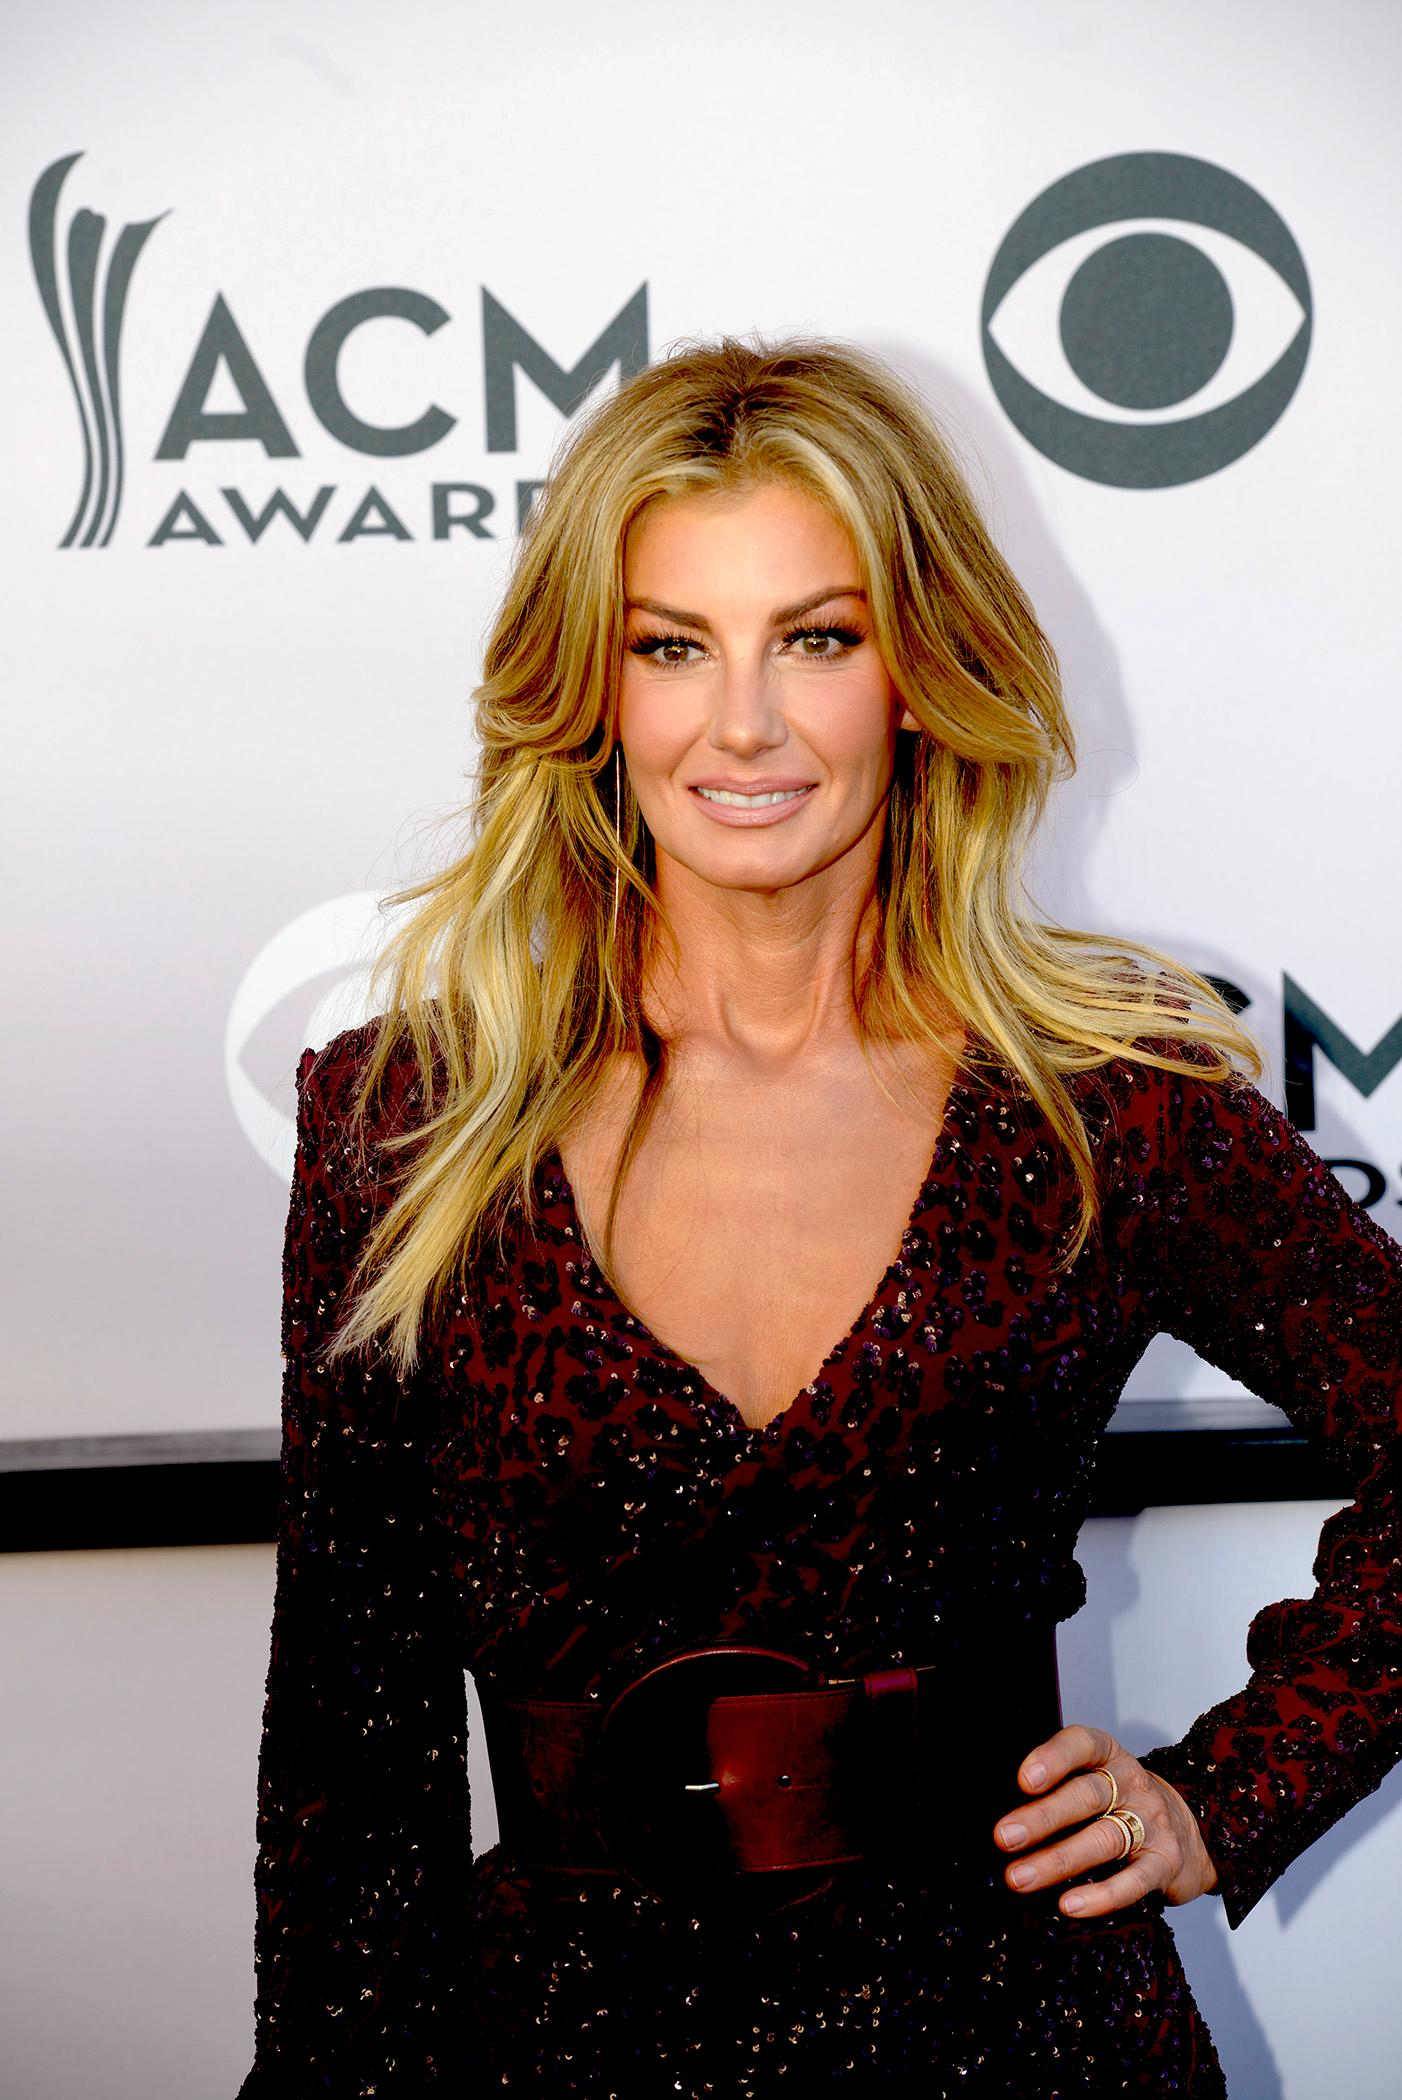 Faith Hill on the Academy of Country Music Awards red carpet at T-Mobile Arena. Sunday, April 2, 2017. (Glenn Pinkerton/ Las Vegas News Bureau)